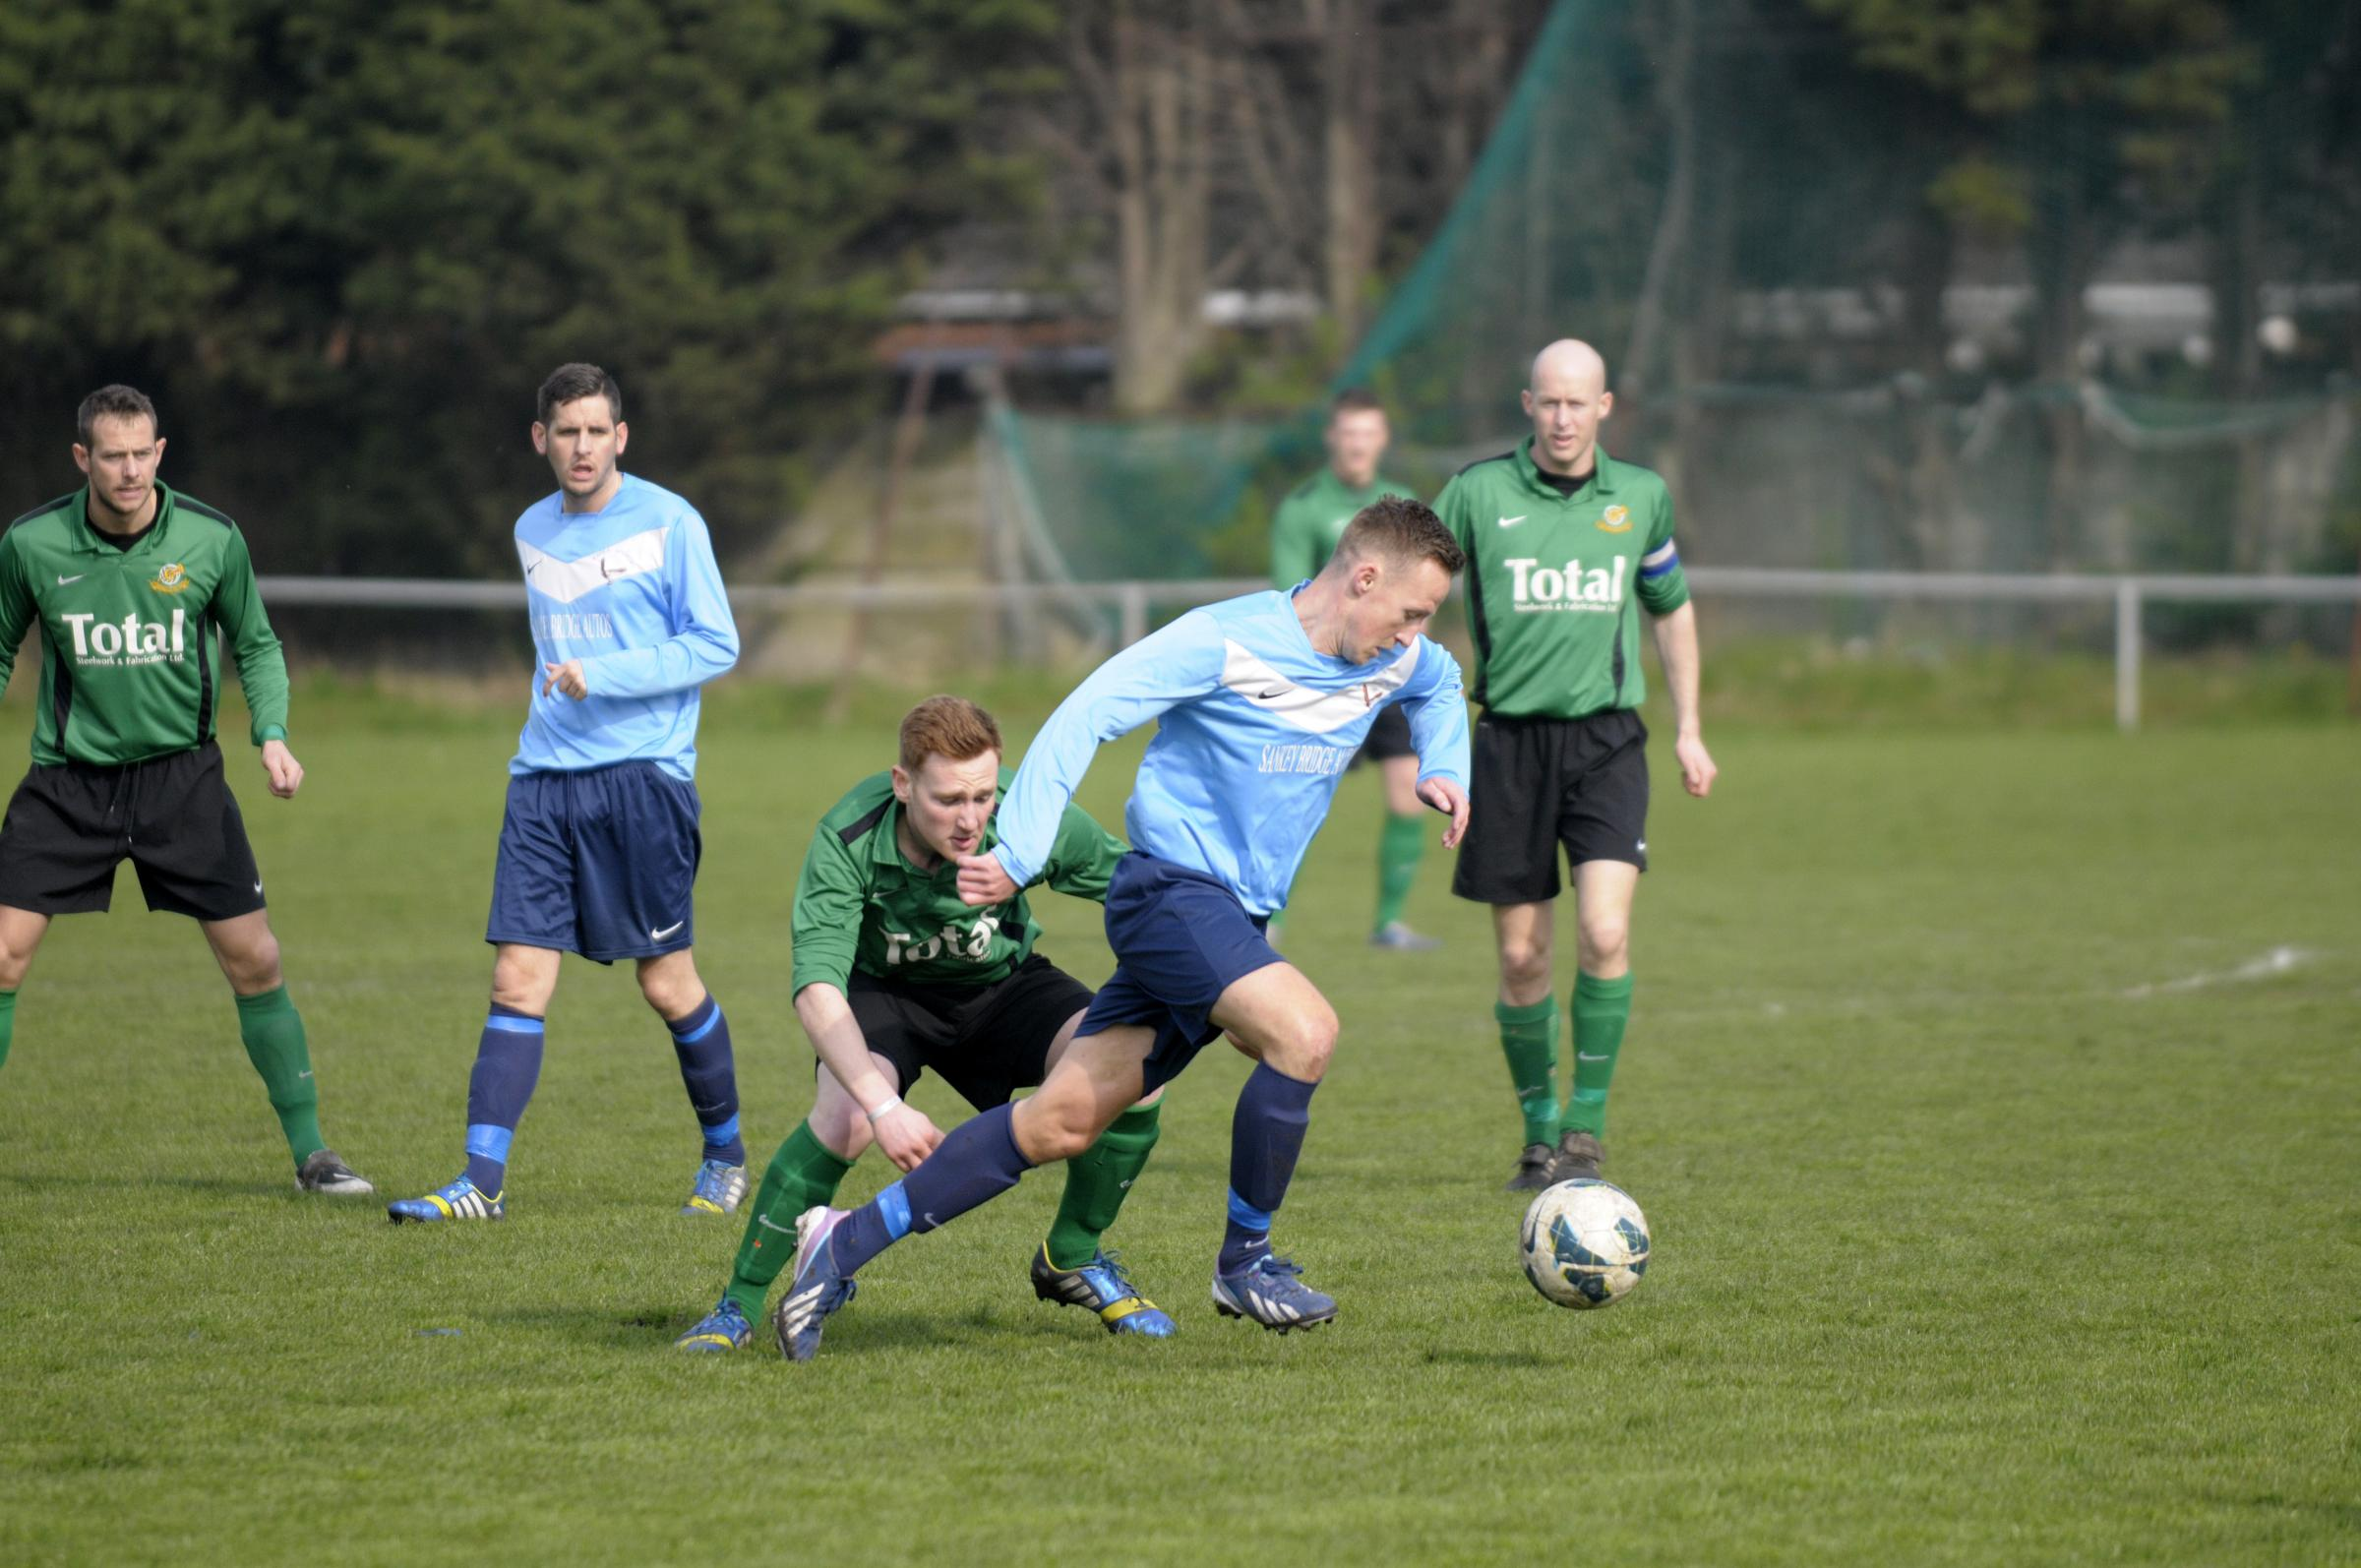 Greenalls look to defend trophy